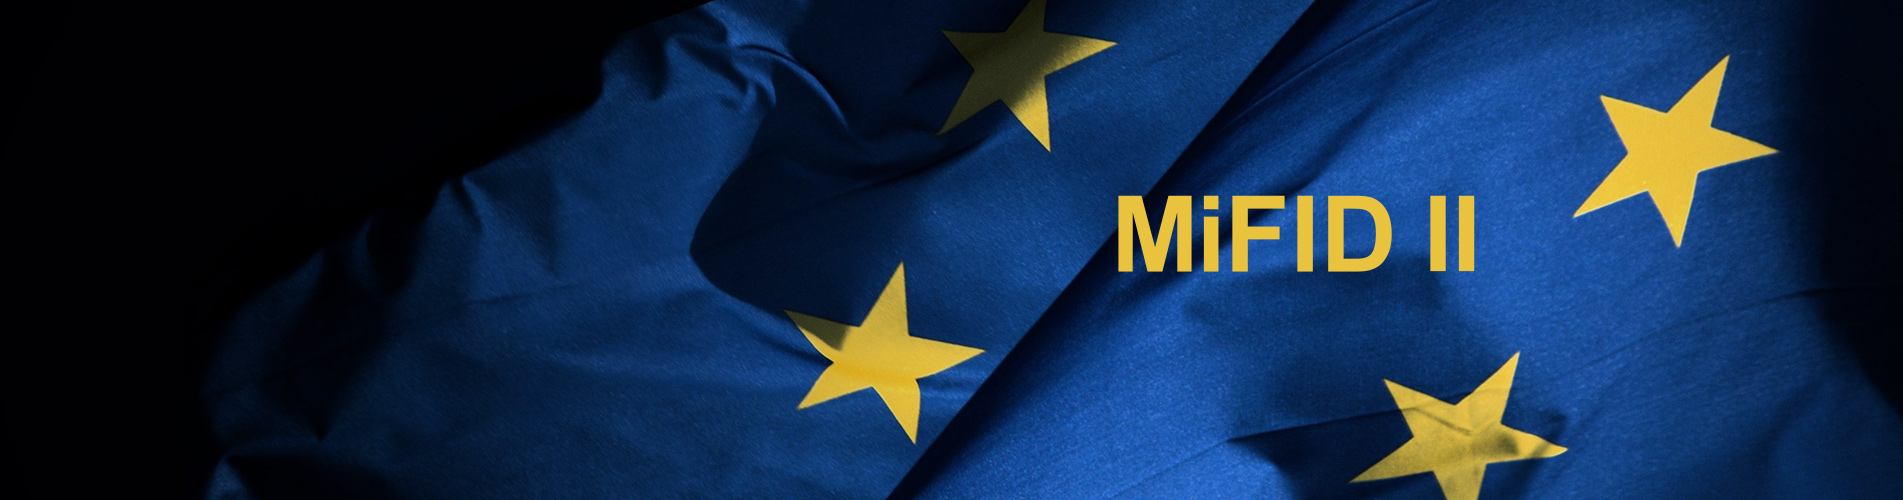 MIFID II and Data Management Issues